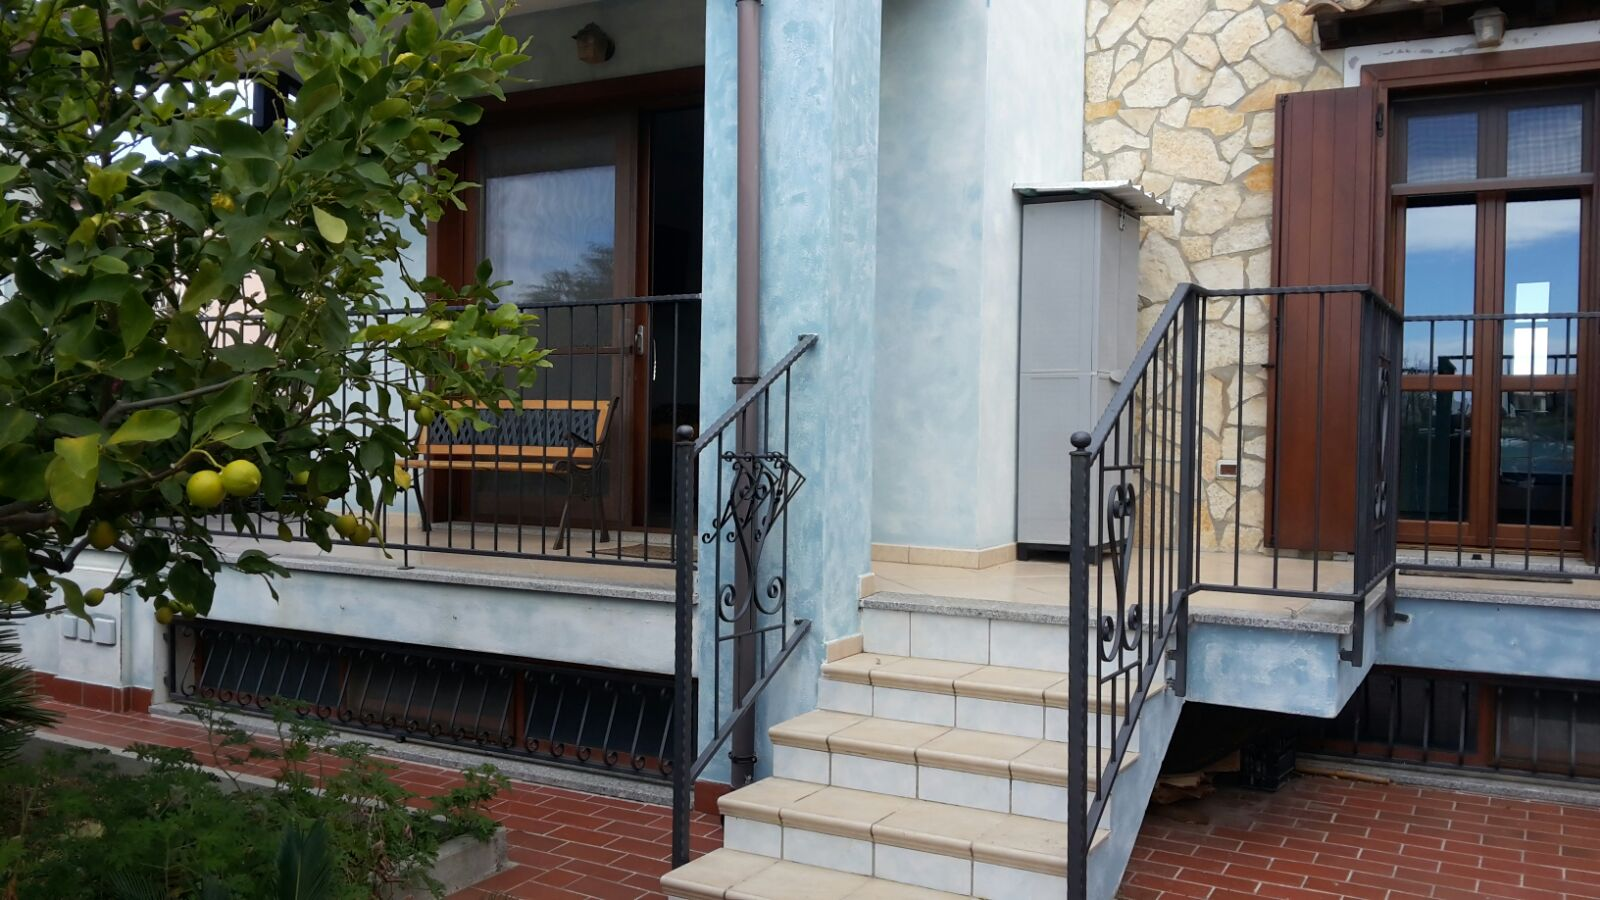 For rent 4 bedroom apartment between Pula beach Nora